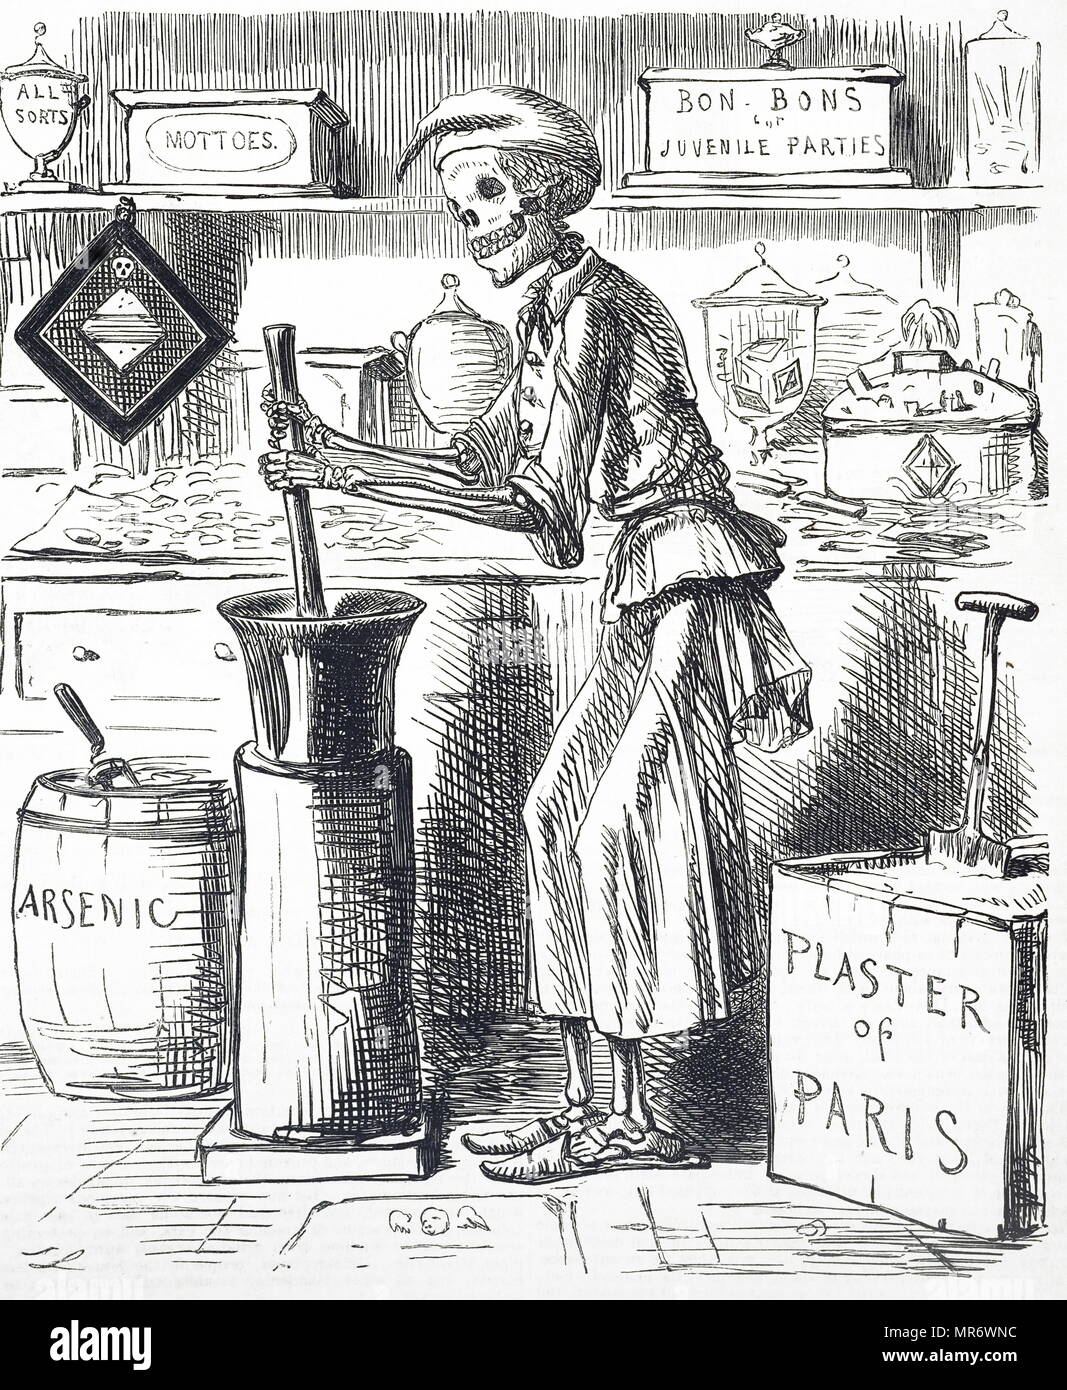 Cartoon titled 'Poisoning by Food Adulteration'. In November 1858 a confectioner bought Plaster of Paris from a druggist to add to lozenges. Instead of Plaster of Paris he was accidently sold arsenic. 20 died out of the 200-odd people poisoned. This case gave ammunition to those trying to get legislation against food adulteration through Parliament (Scholfield Act of 1859). Illustrated by John Leech (1817-1864) an English caricaturist and illustrator. Dated 19th century - Stock Image